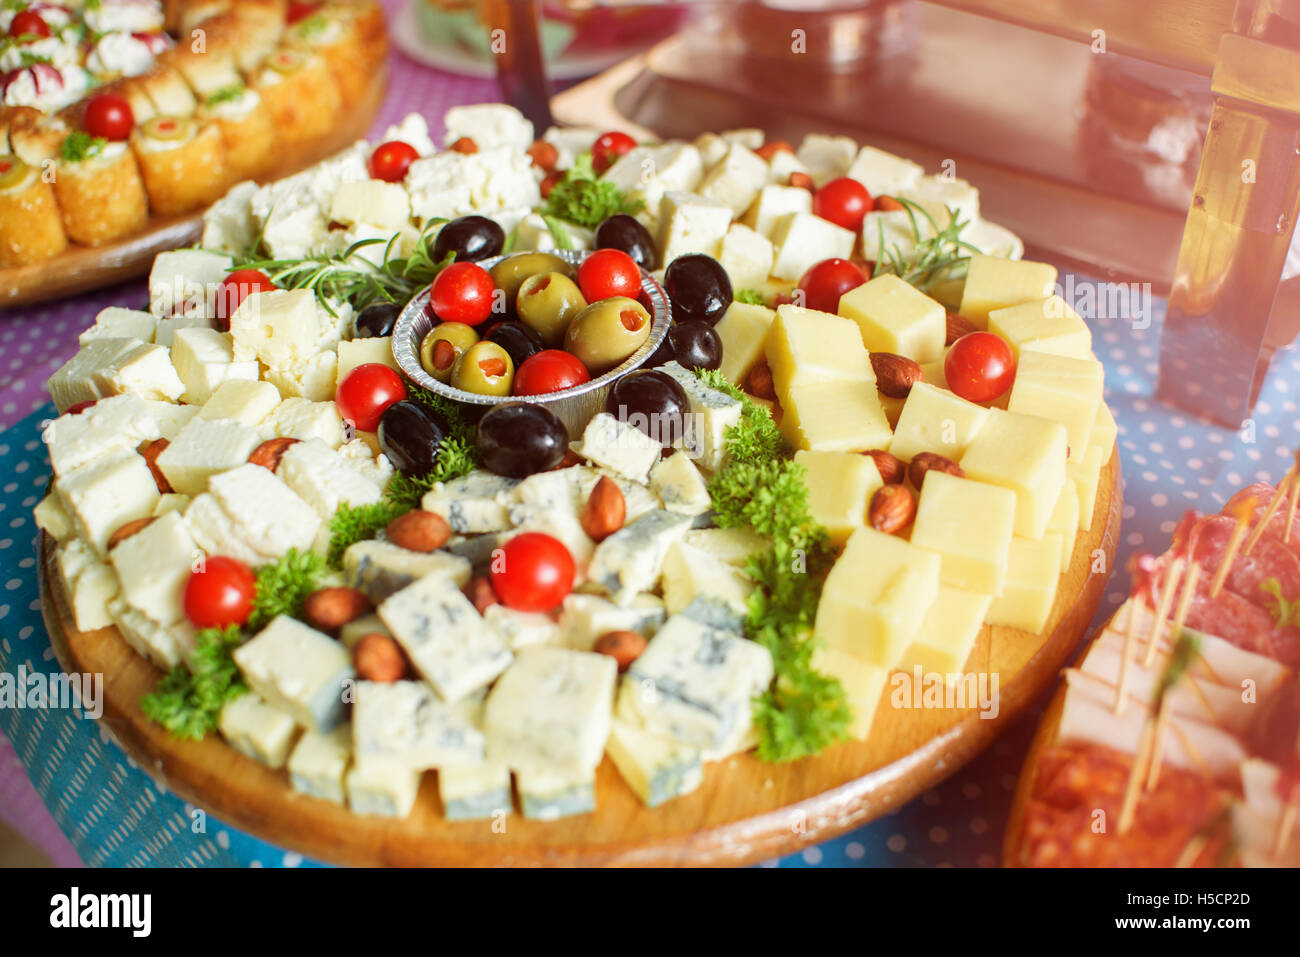 White and yellow cheese, tomato and olives on wooden plate Stock Photo